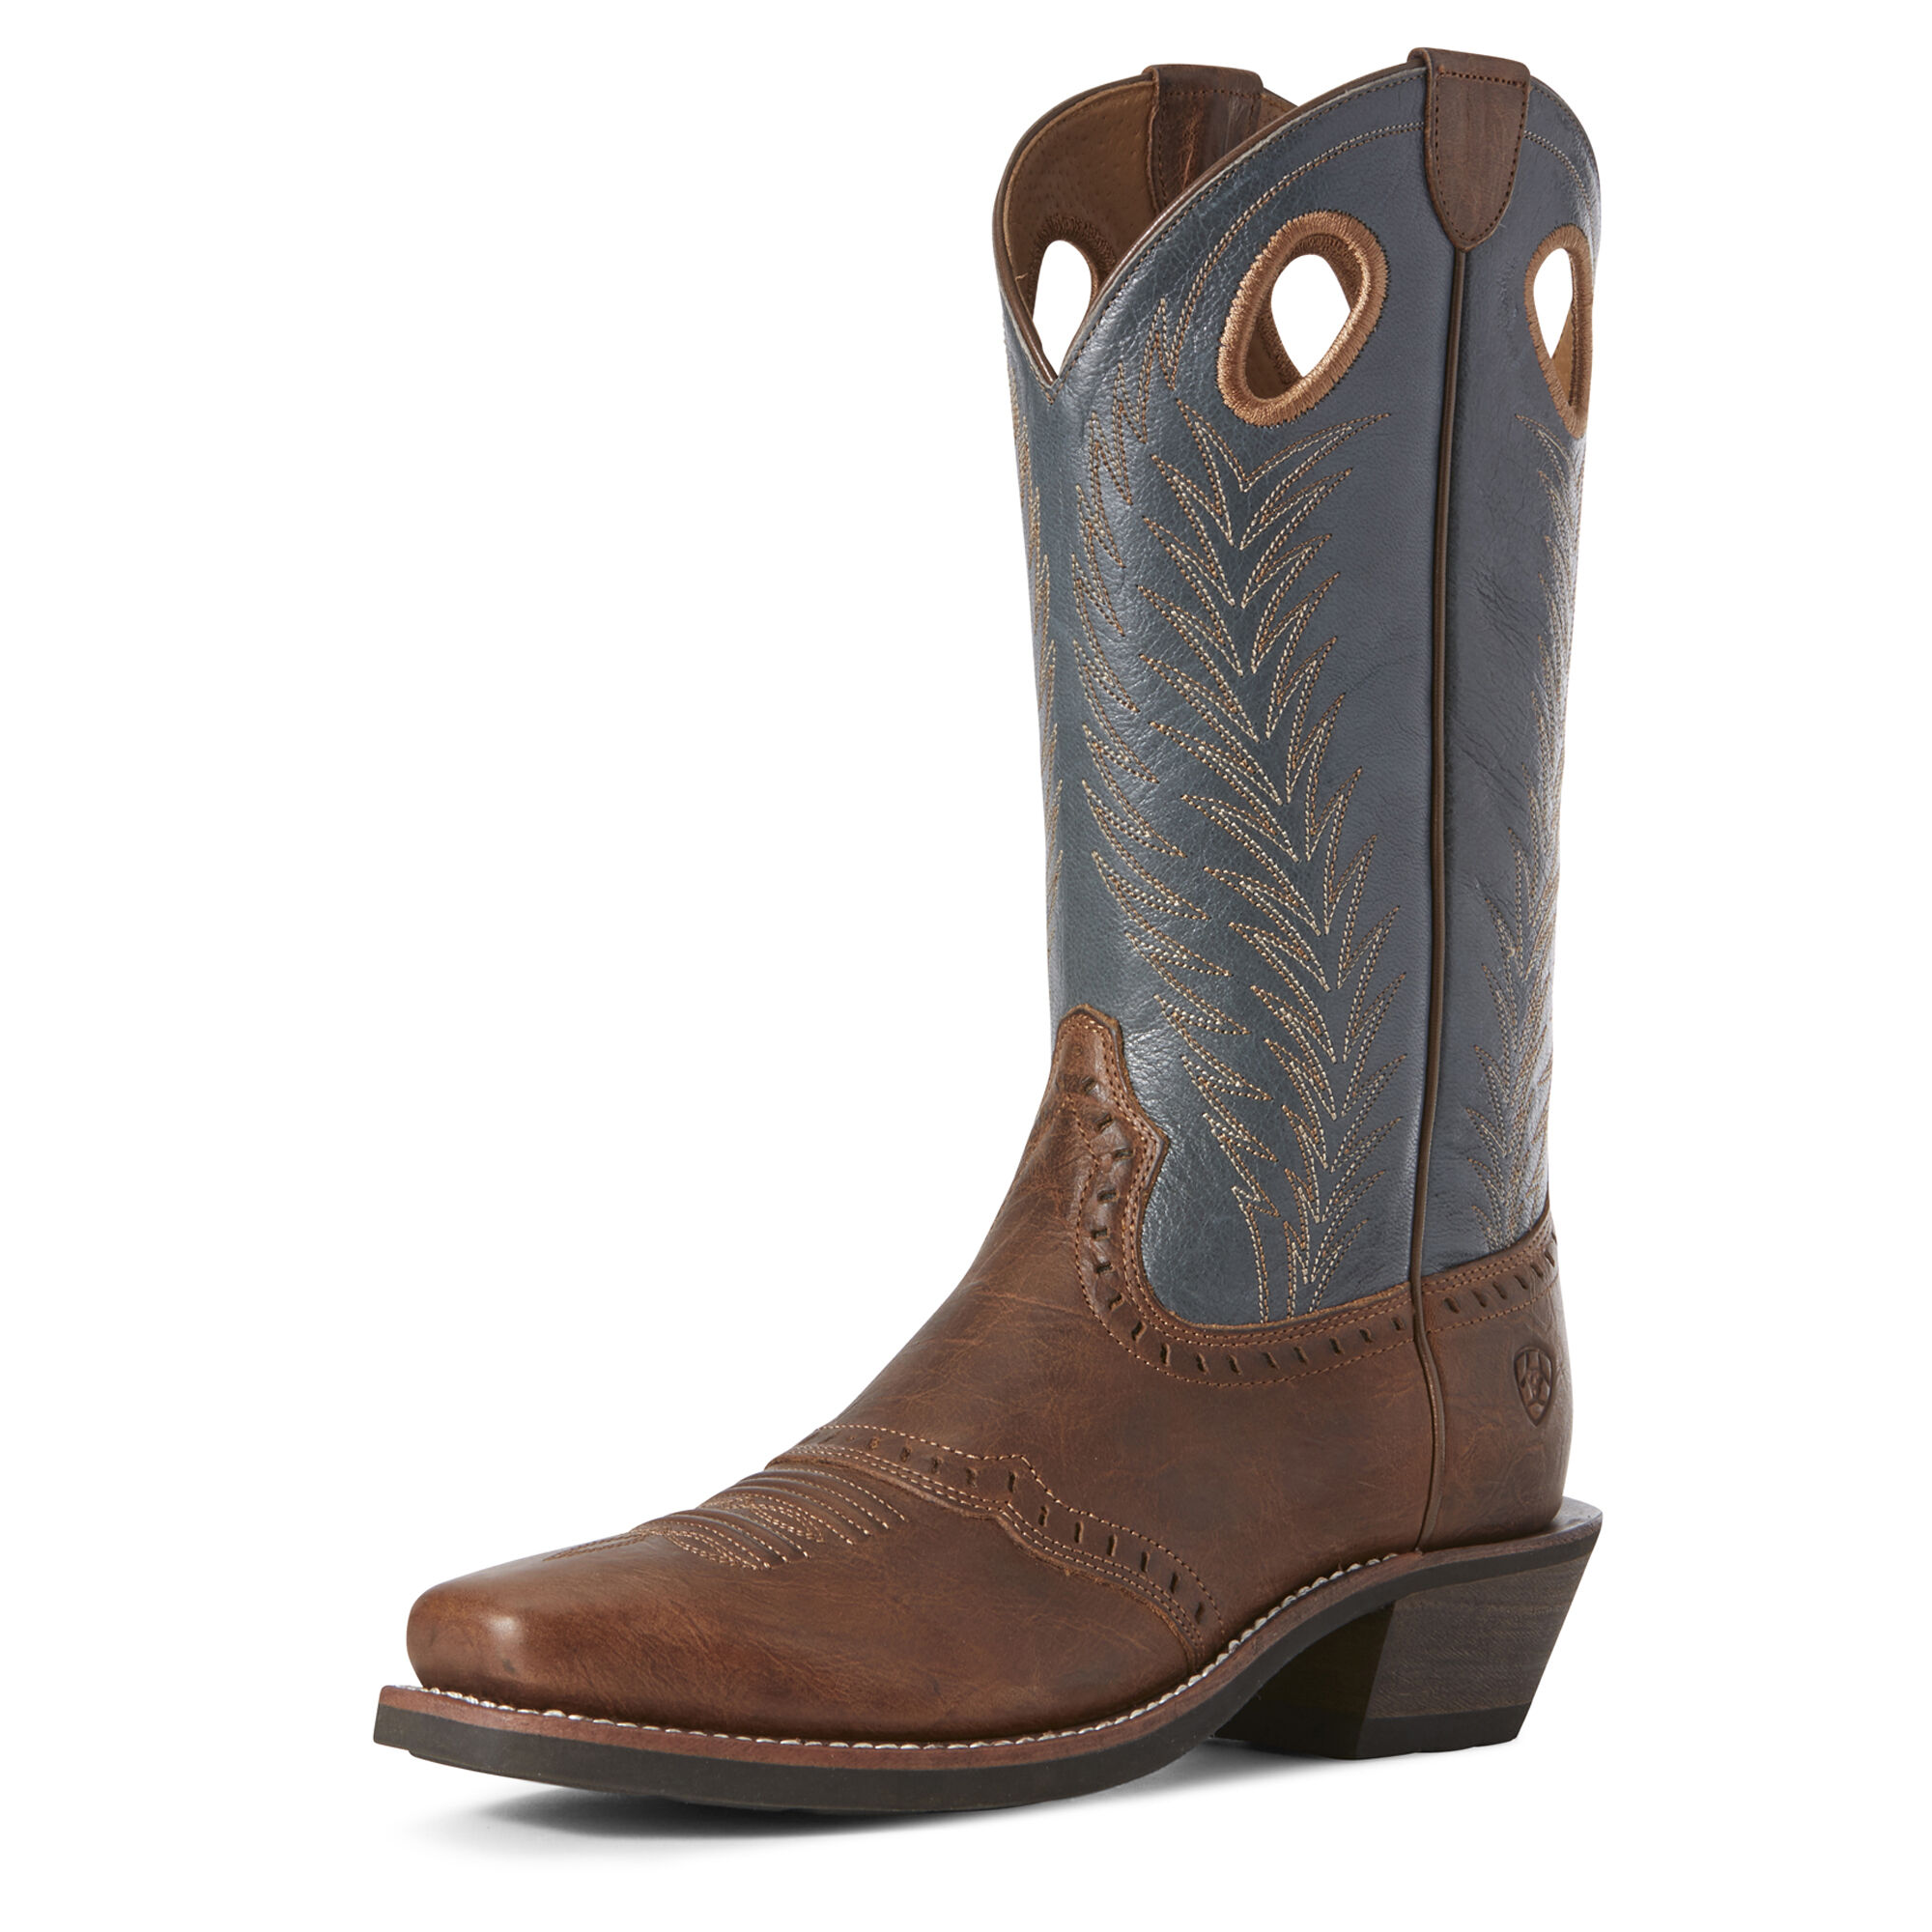 Women's Heritage Rancher Western Boots in Sandstorm by Ariat